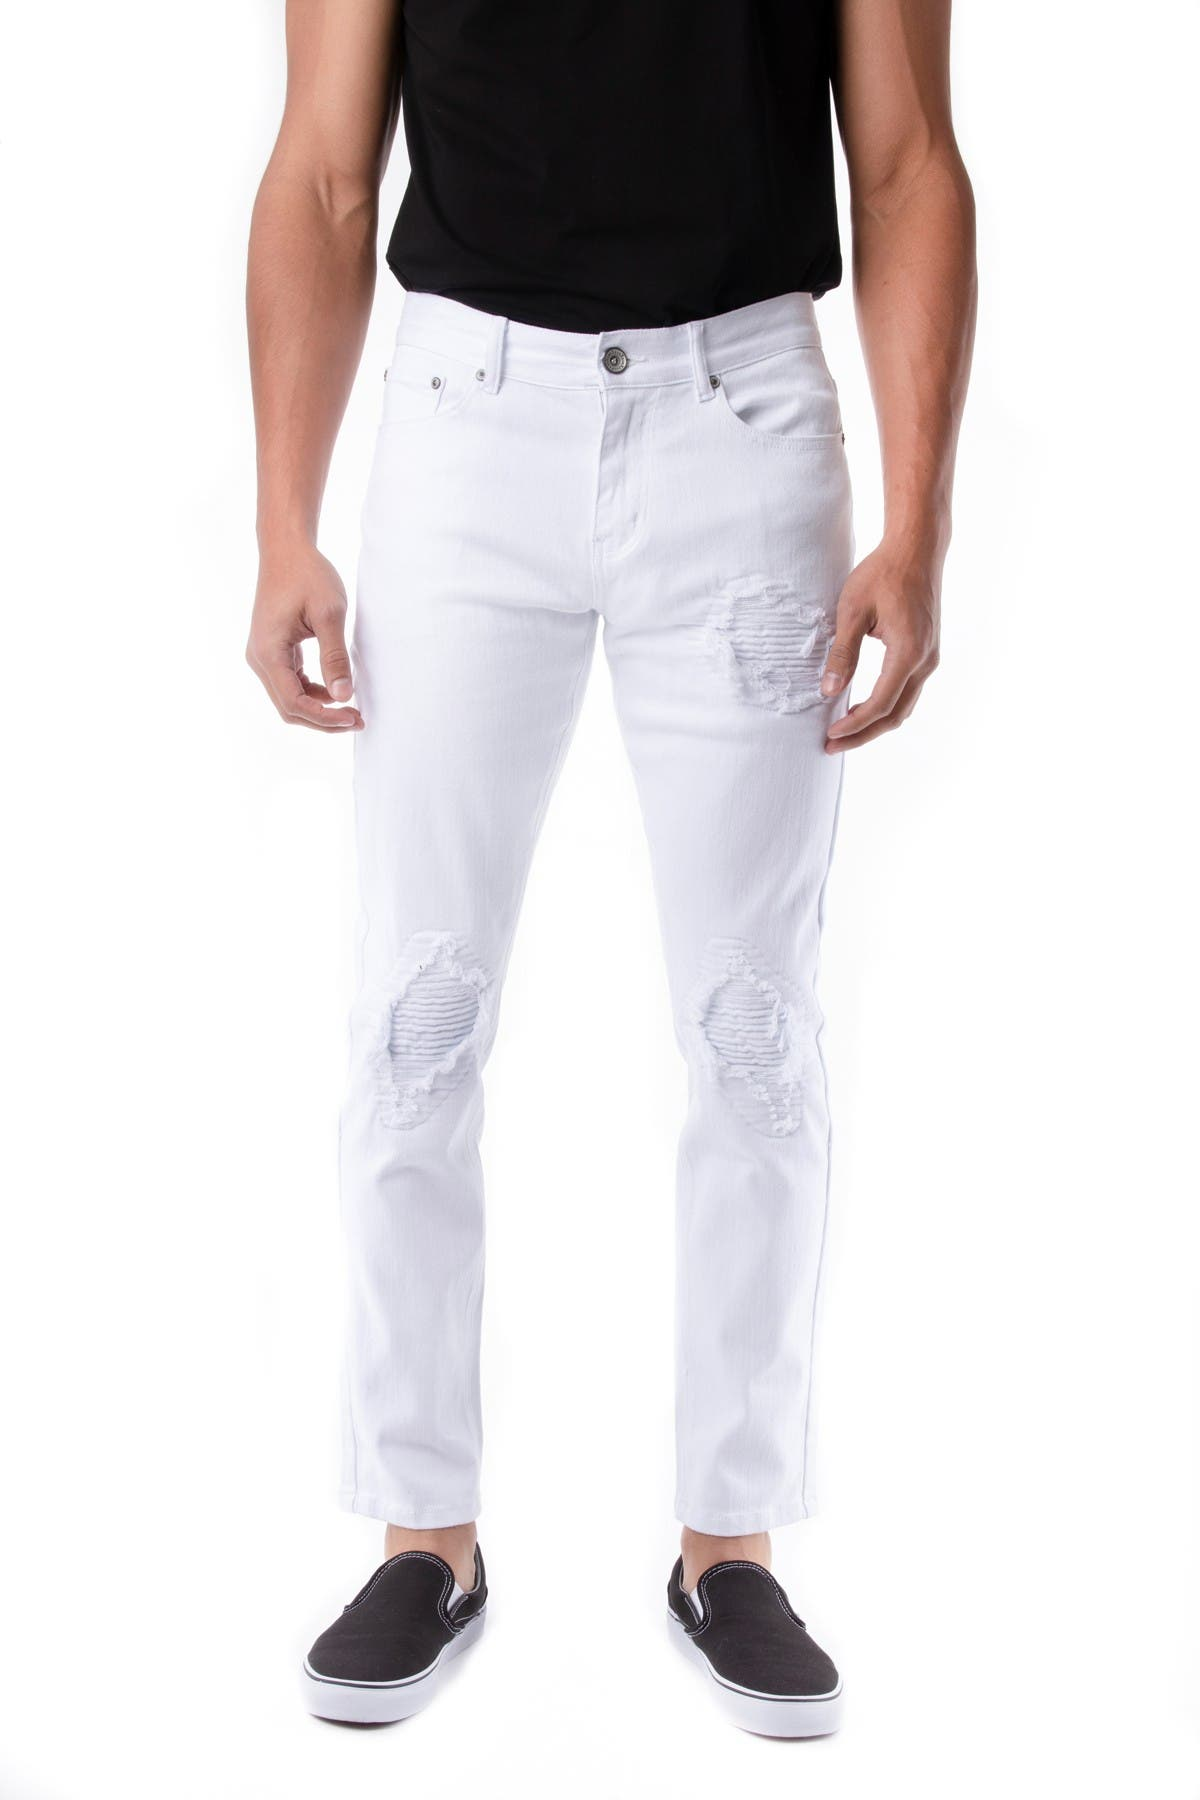 Image of XRAY Distressed Skinny Jeans